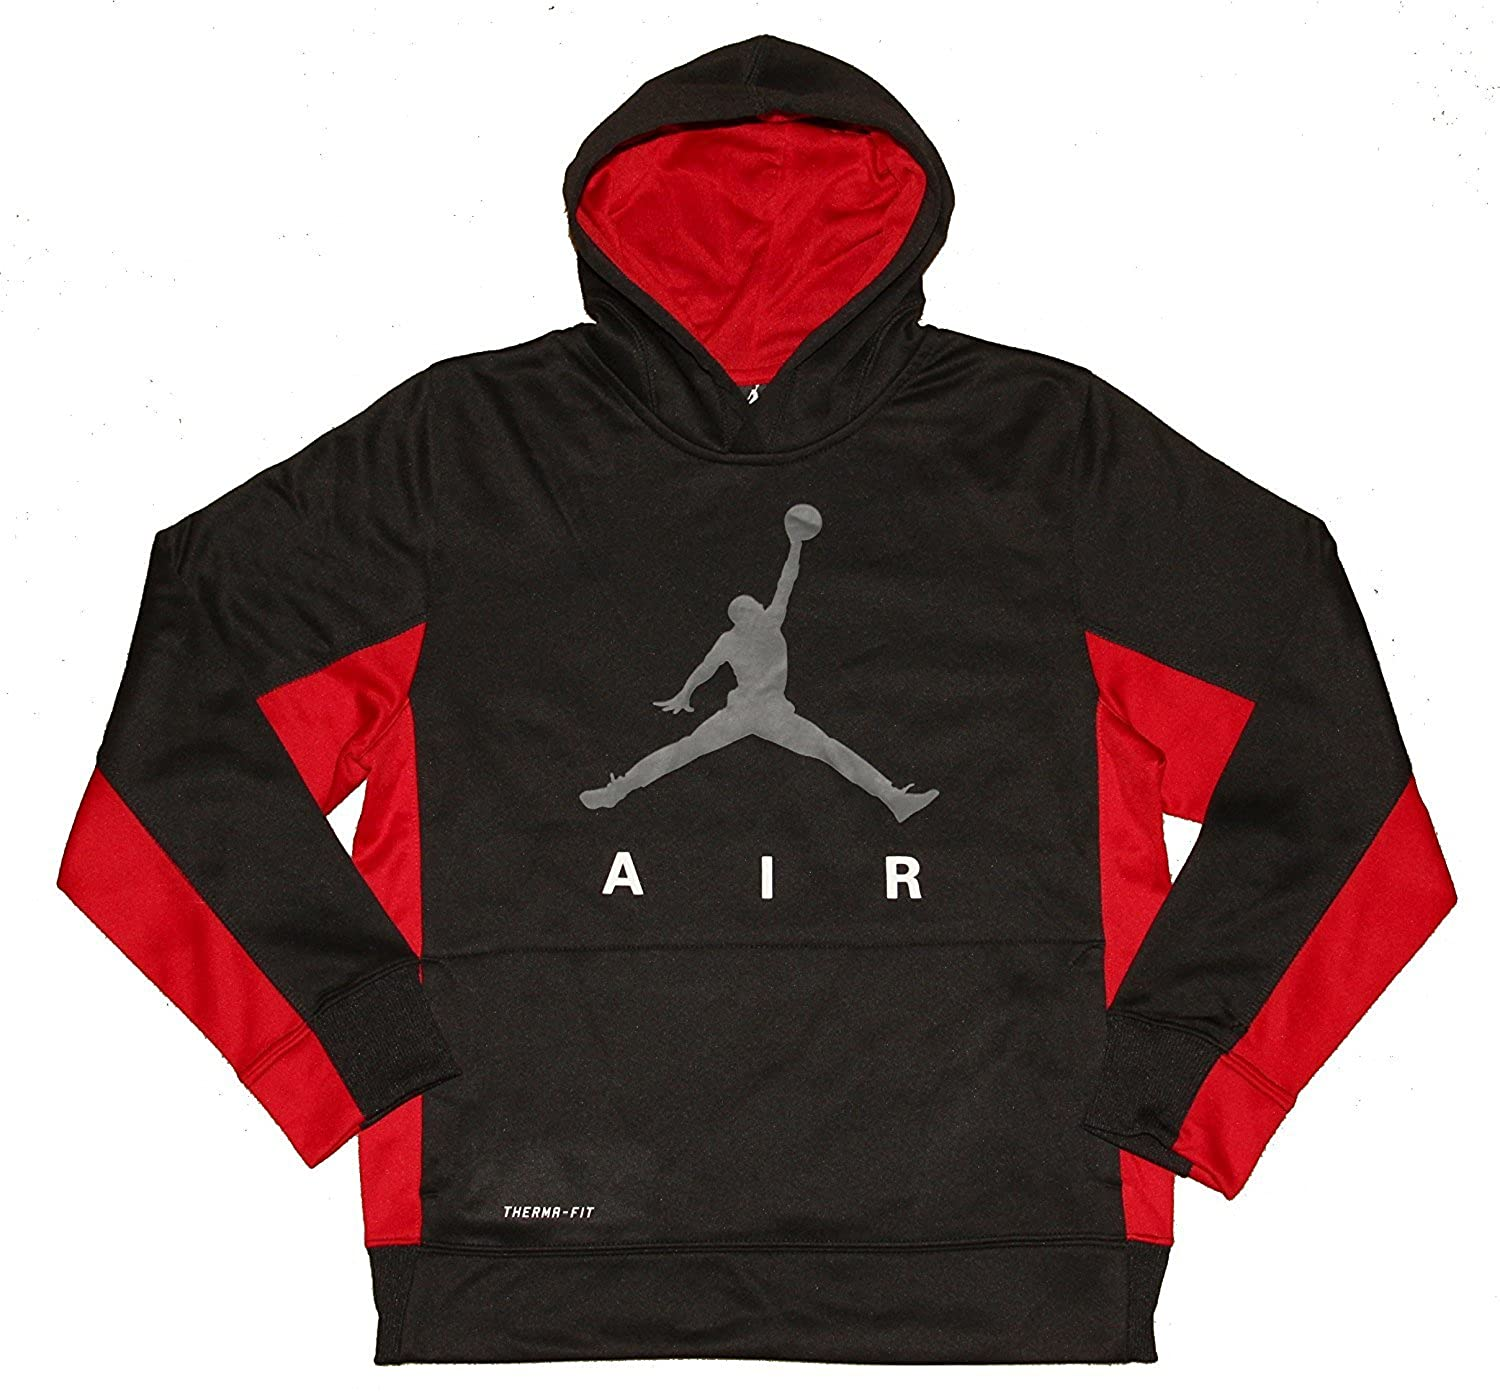 3ce1c5275f Amazon.com: Air Jordan Boys Therma-Fit Pullover Hoodie Black/Gym Red Size  7: Sports & Outdoors